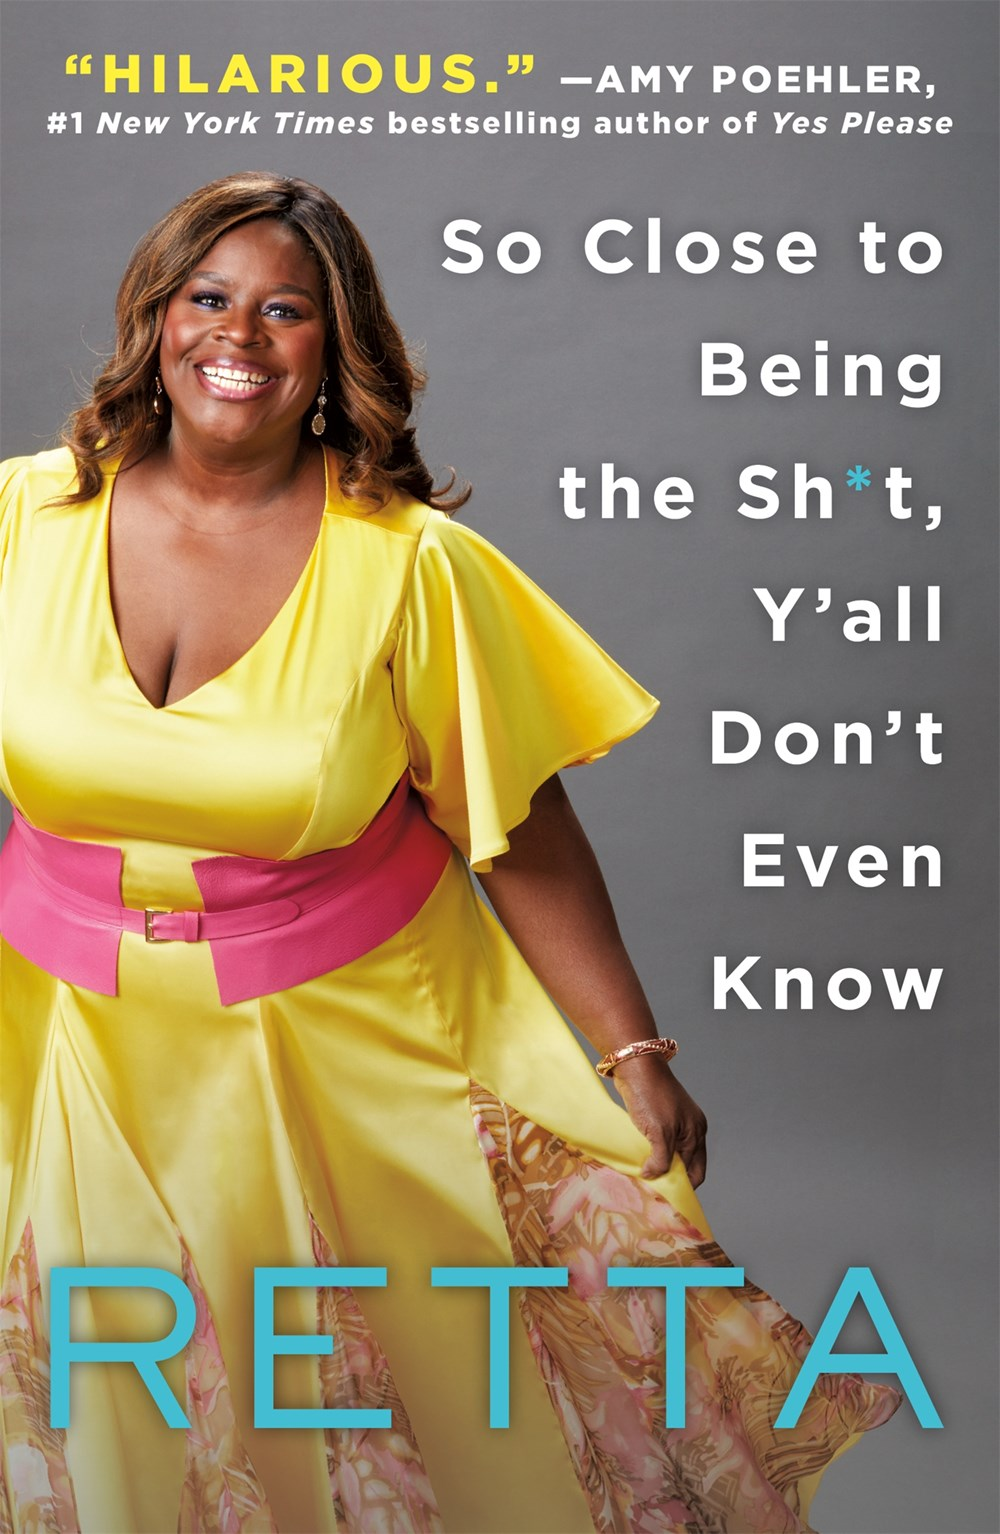 Image For Retta - So Close to Being the Sh*t, Y'all Don't Even Know